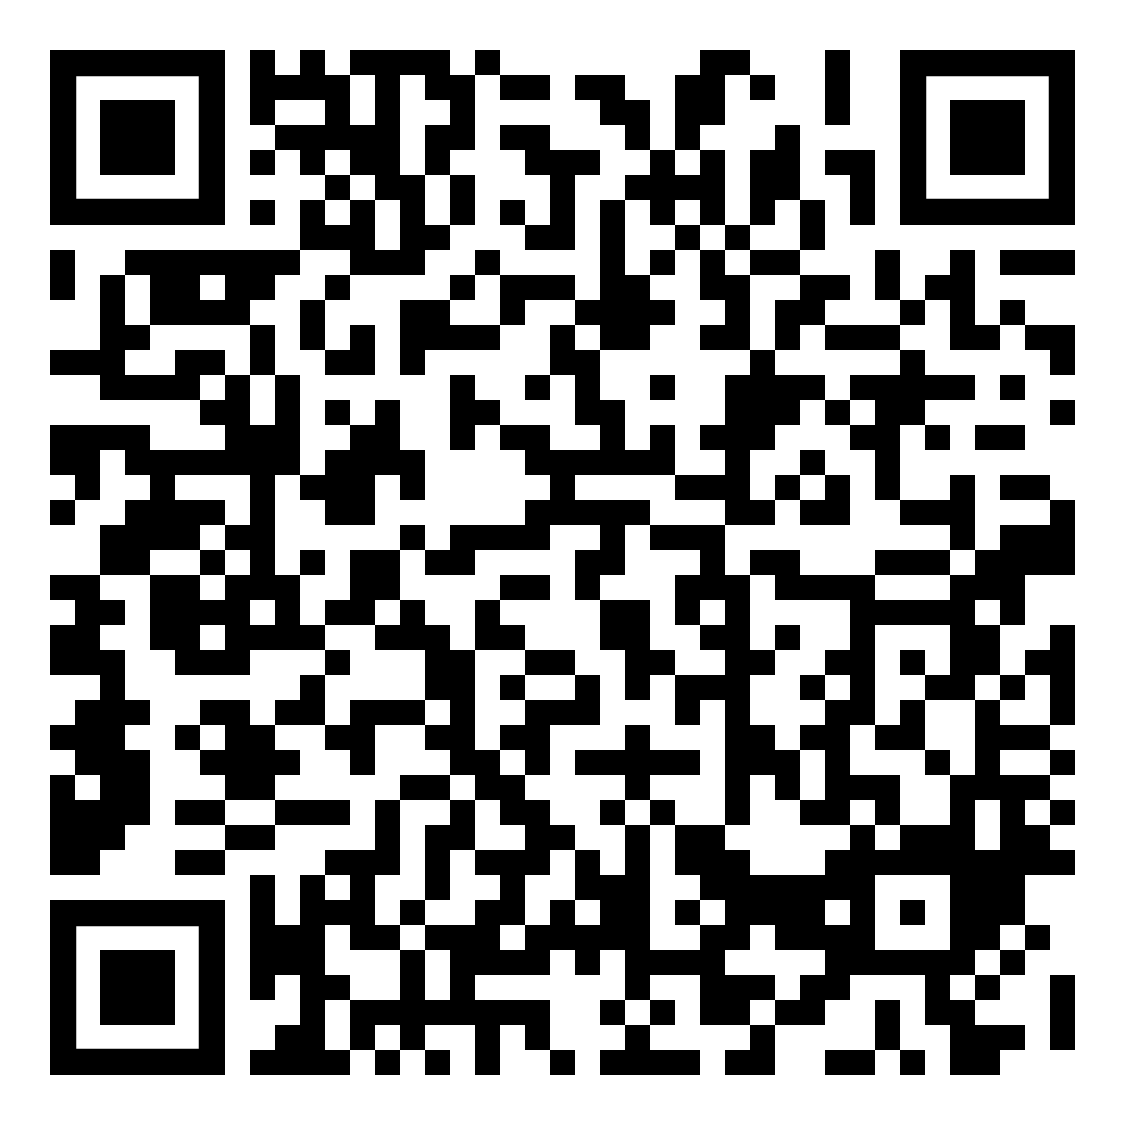 QR code eBook Resource List